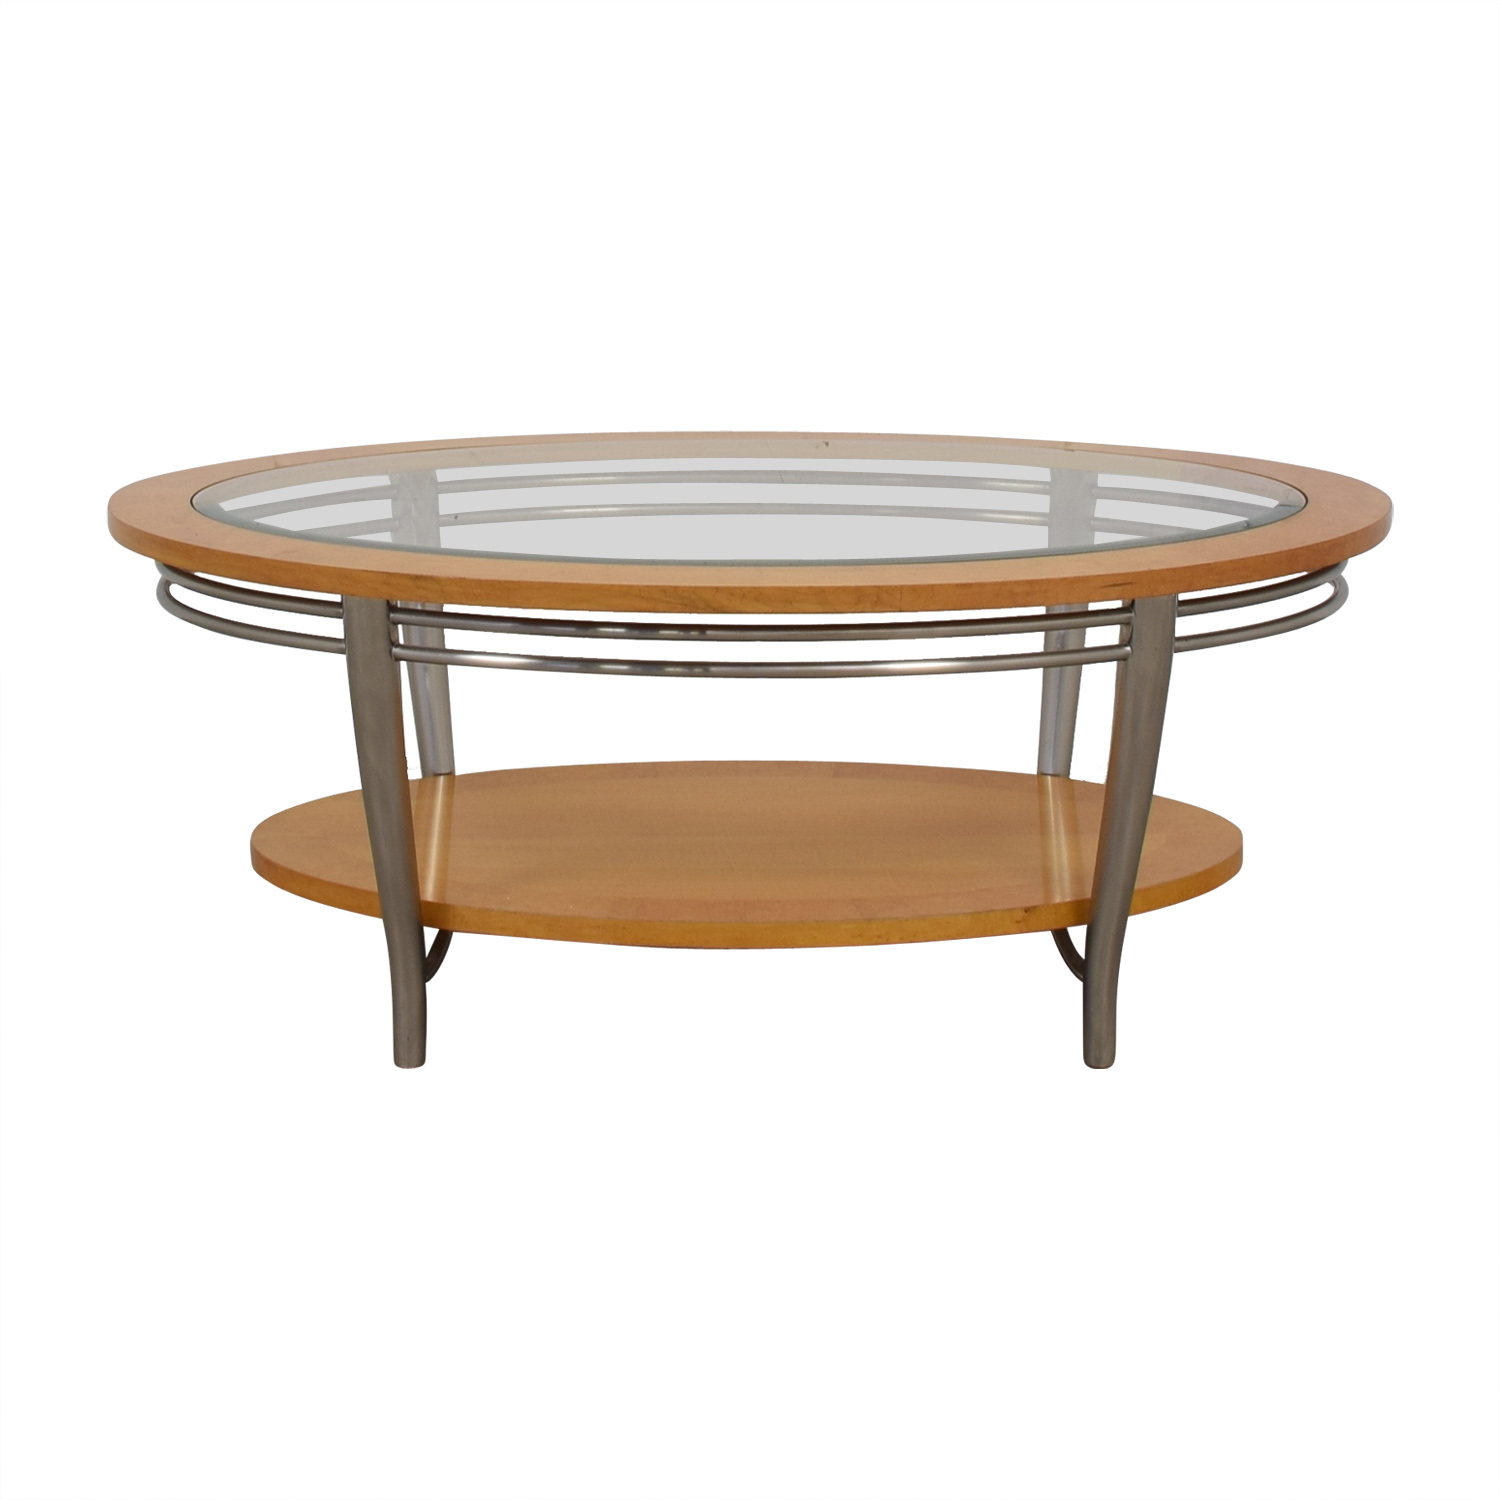 Bernhardt Bernhardt Wooden Oval Coffee Table